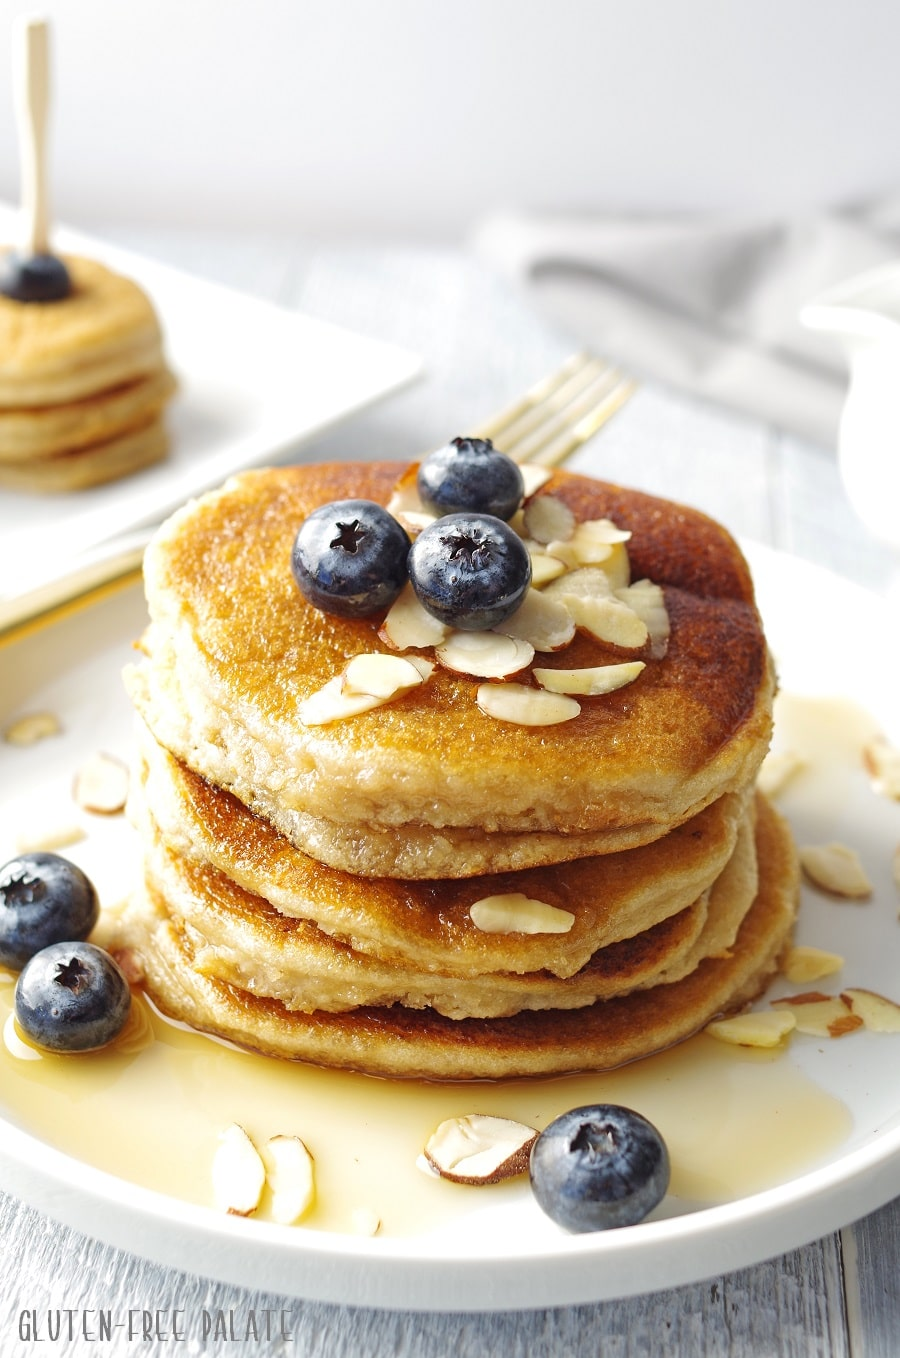 pancakes stacked on a white plate, topped with blueberries, sliced almonds and maple syrup